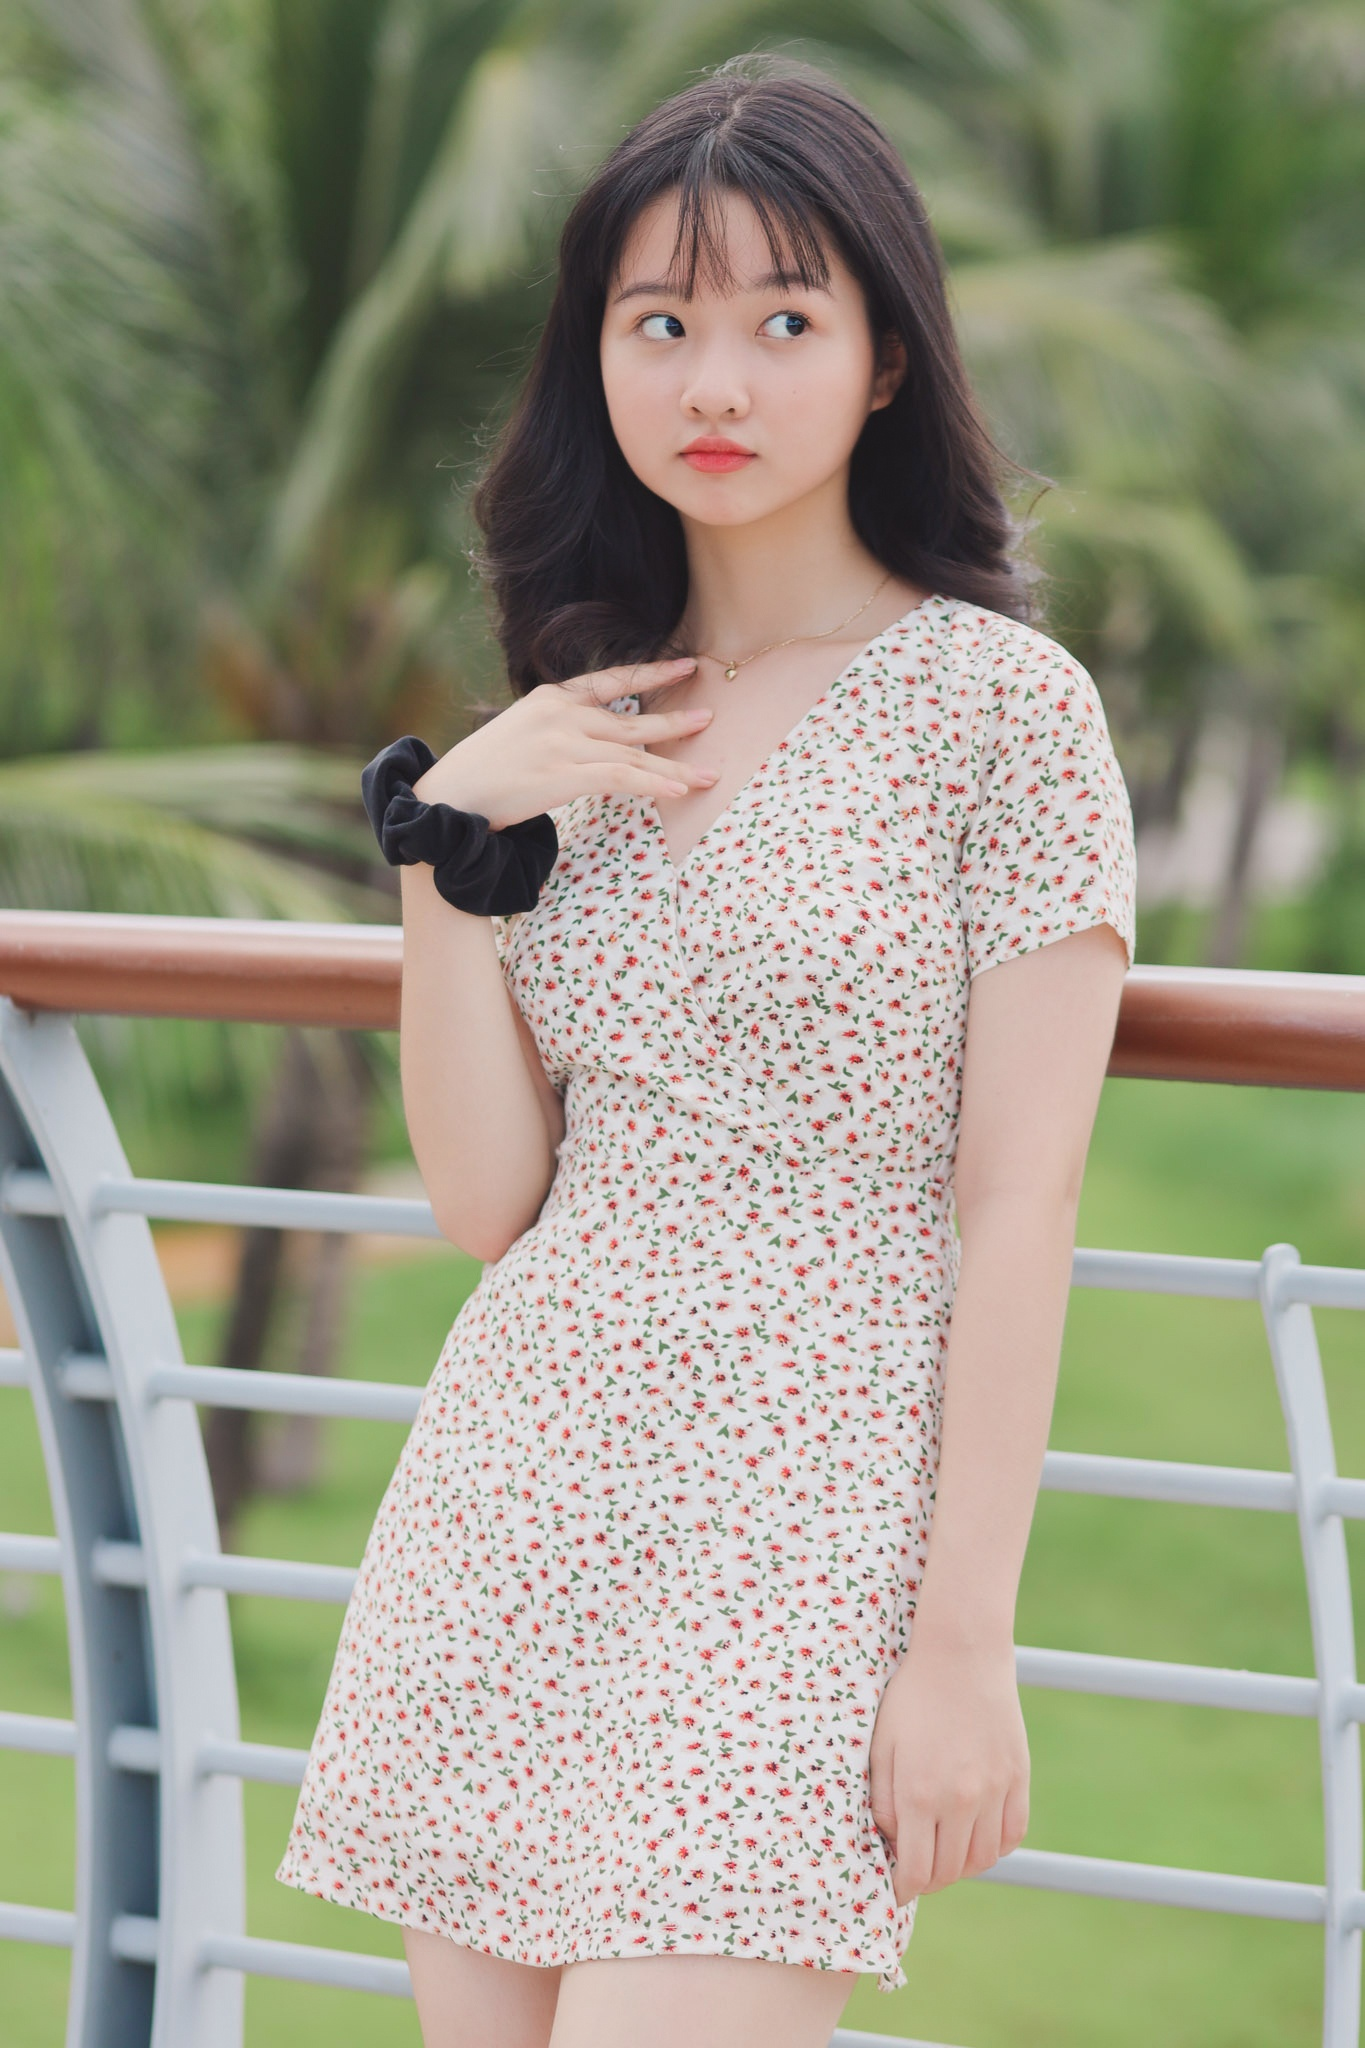 dien vien lam thanh my tuoi 15 anh 3